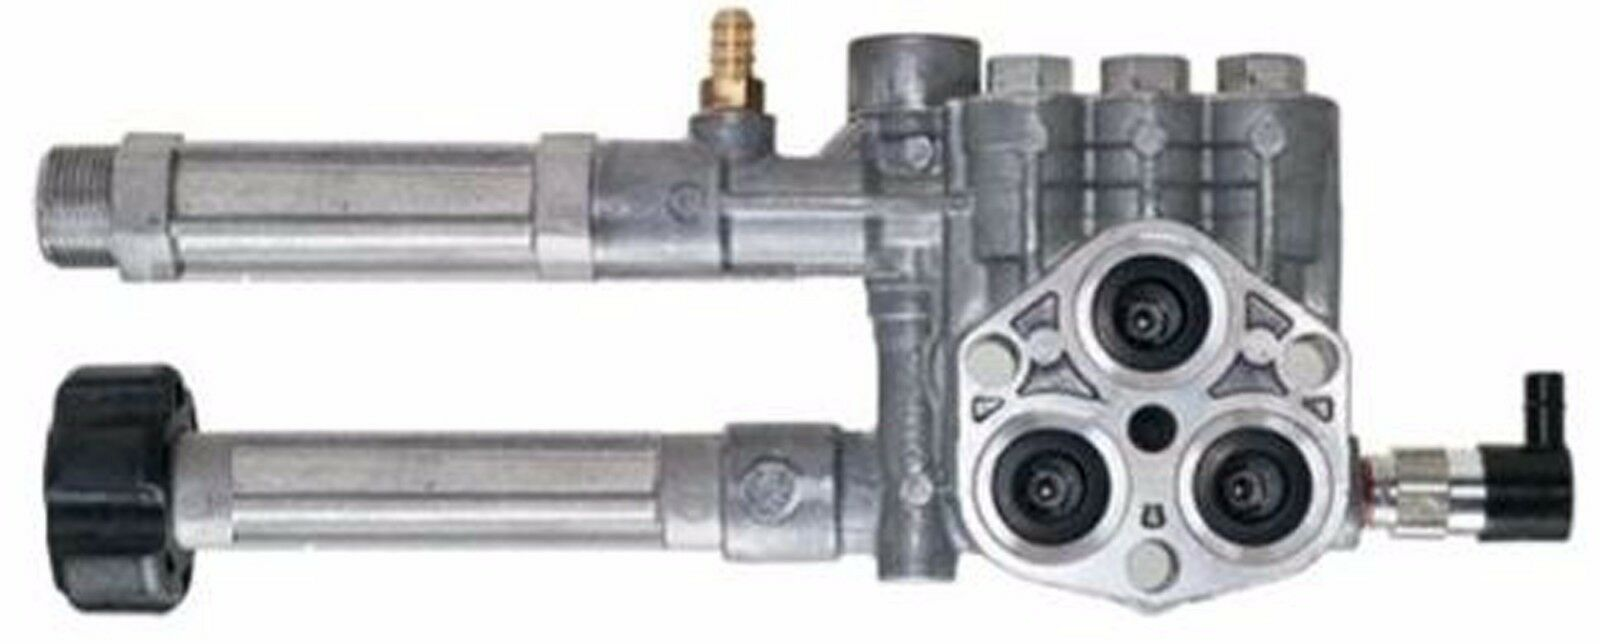 Upgrade Pump Head Kit for Pressure Washers - RMW2.2G24